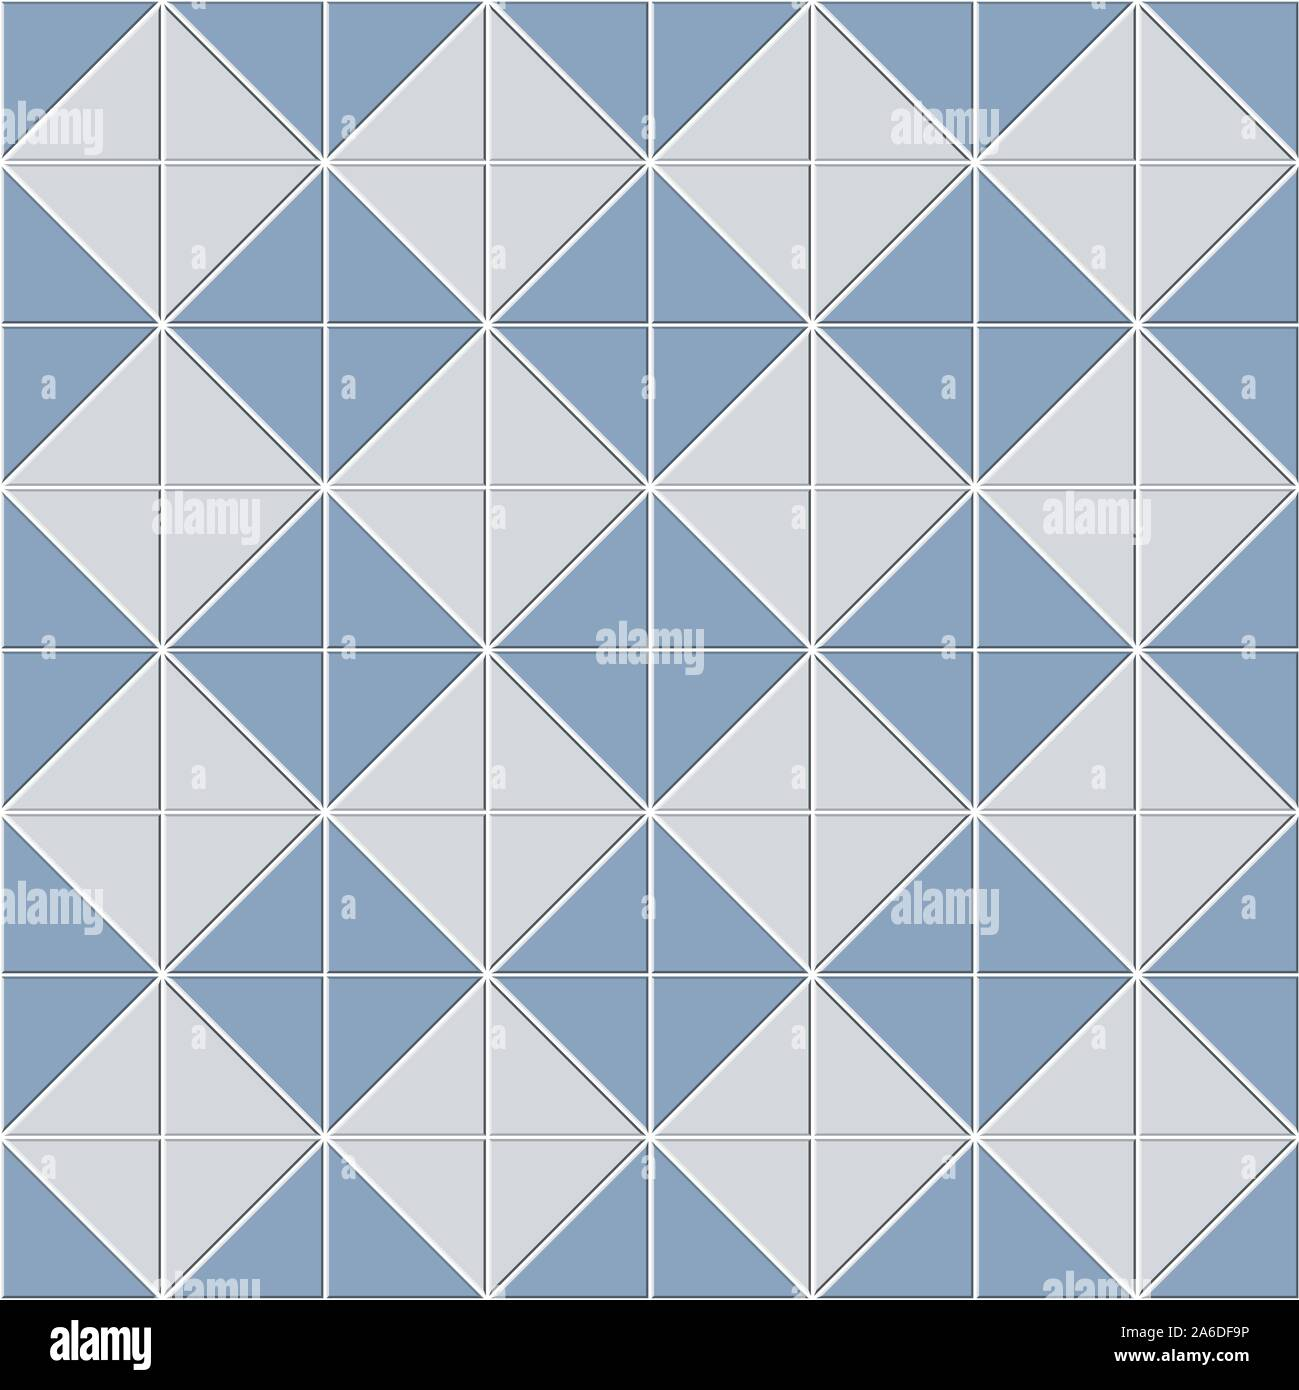 Seamless Pattern Of Blue White Ceramic Tiles Square Shape Block Consisting Of Triangle Design Geometric Texture For Bathroom Vector Illustration Stock Vector Image Art Alamy